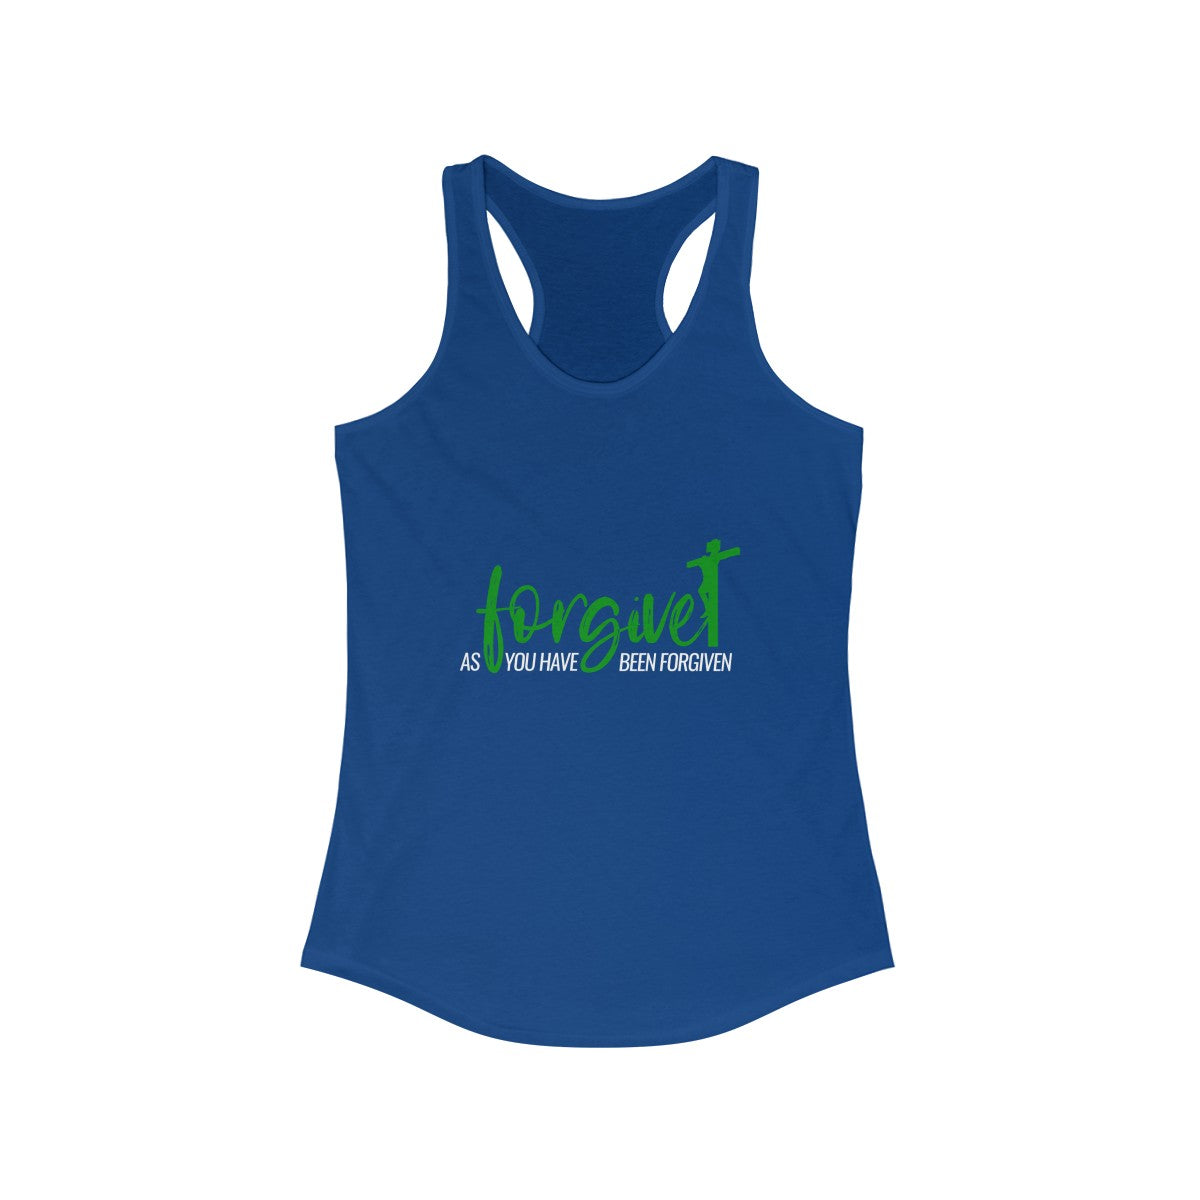 Forgive as you have been forgiven Women's Ideal Racerback Tank